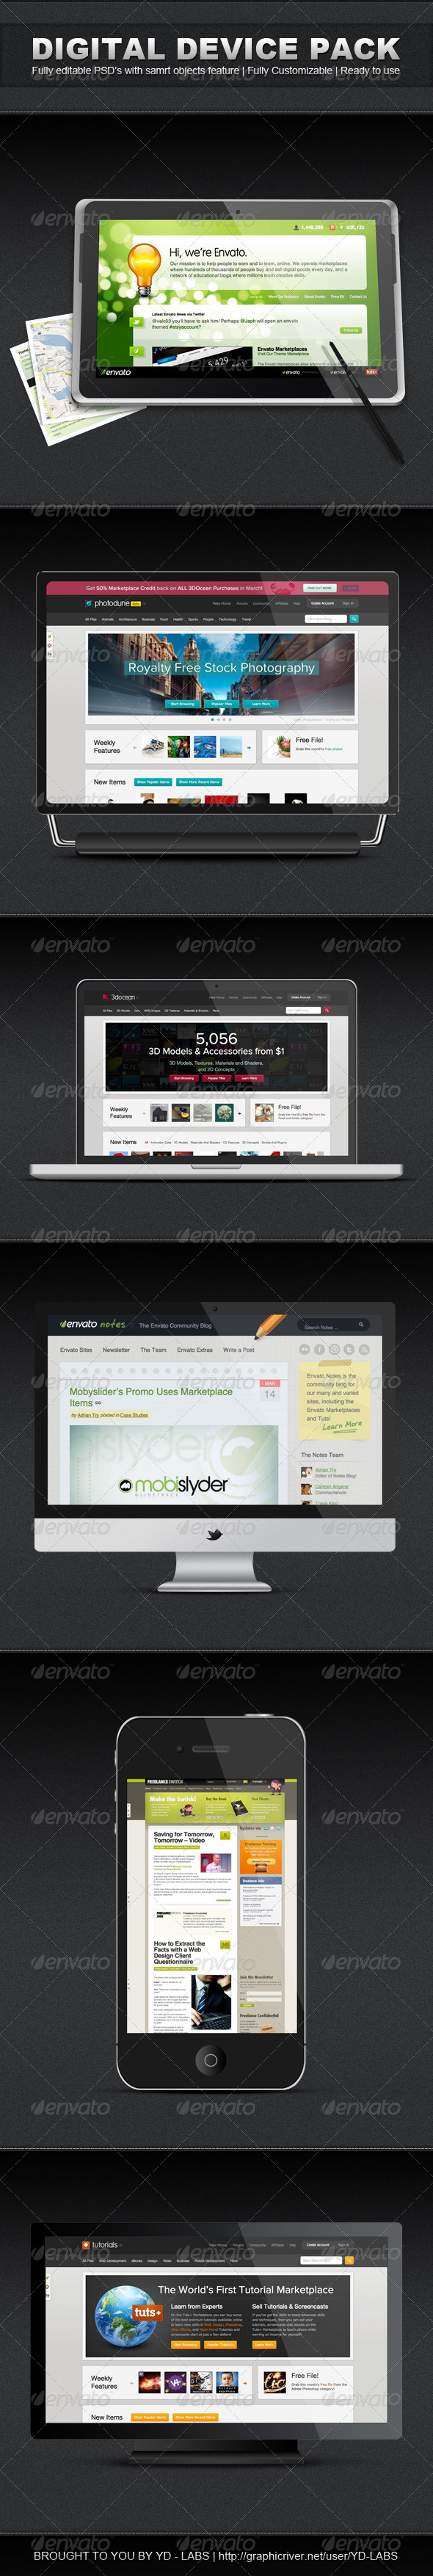 GraphicRiver Digital Device Pack 1 1952157